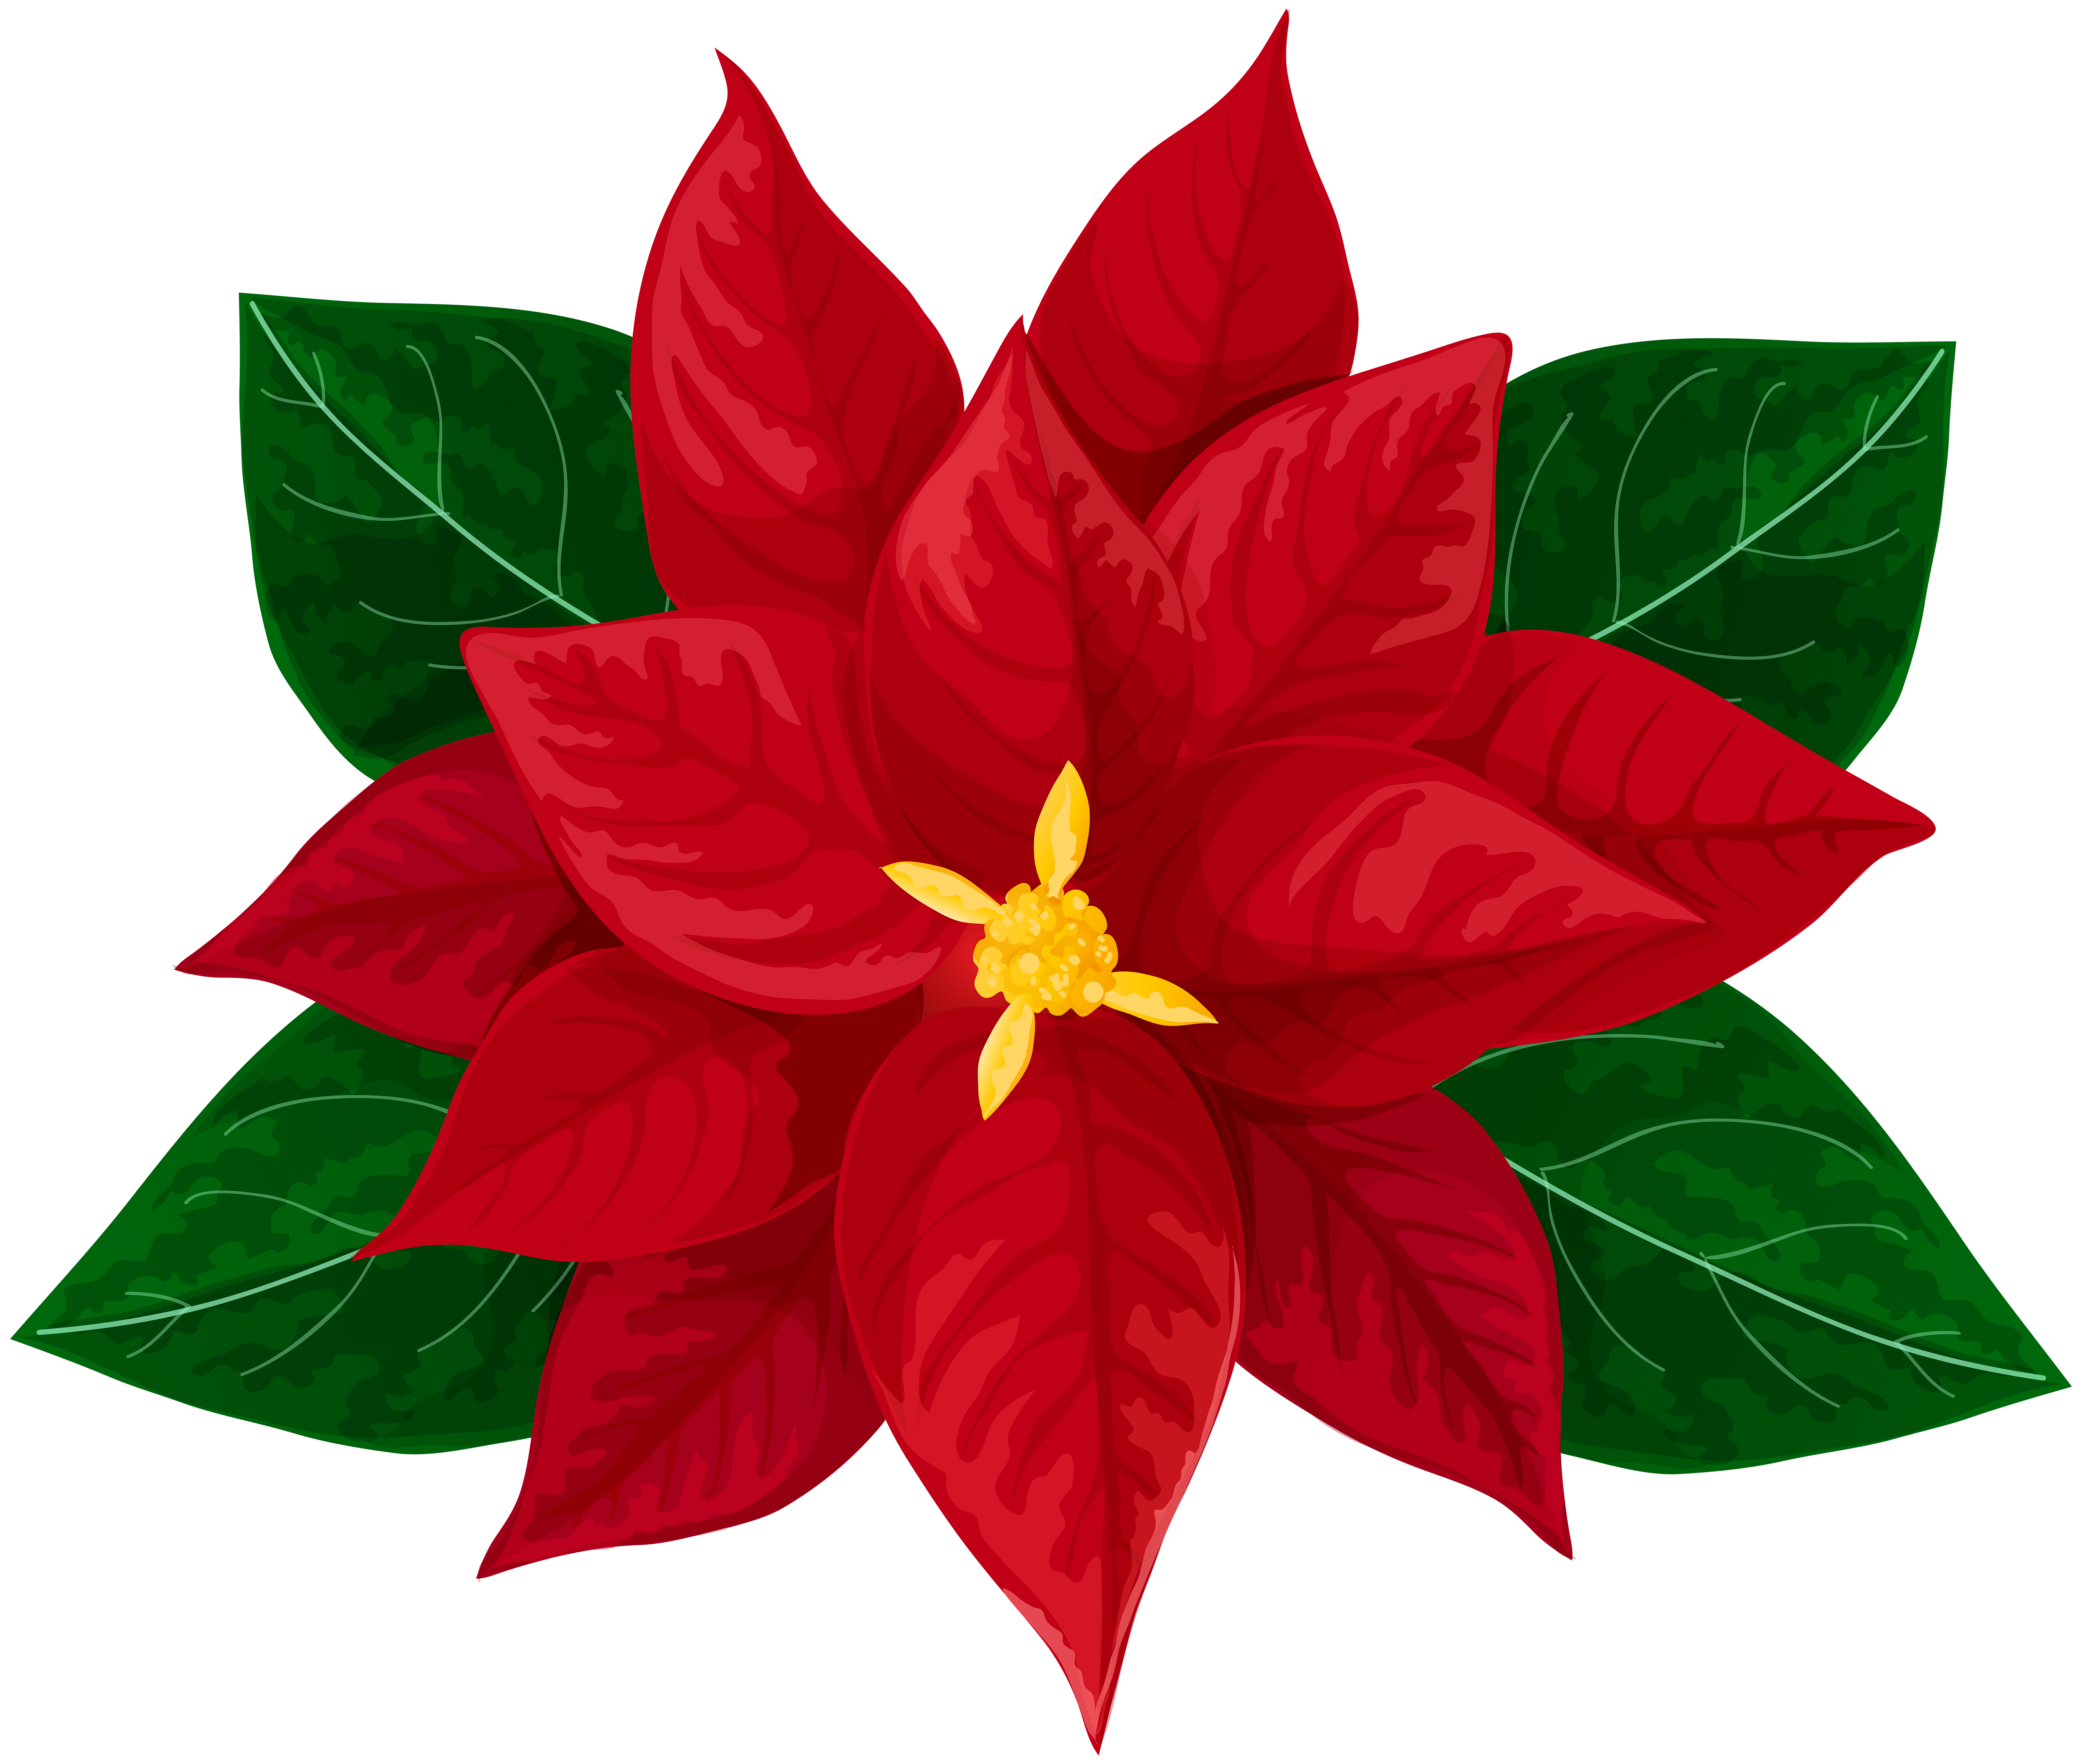 Poinsettia transparent red. Clip art image gallery